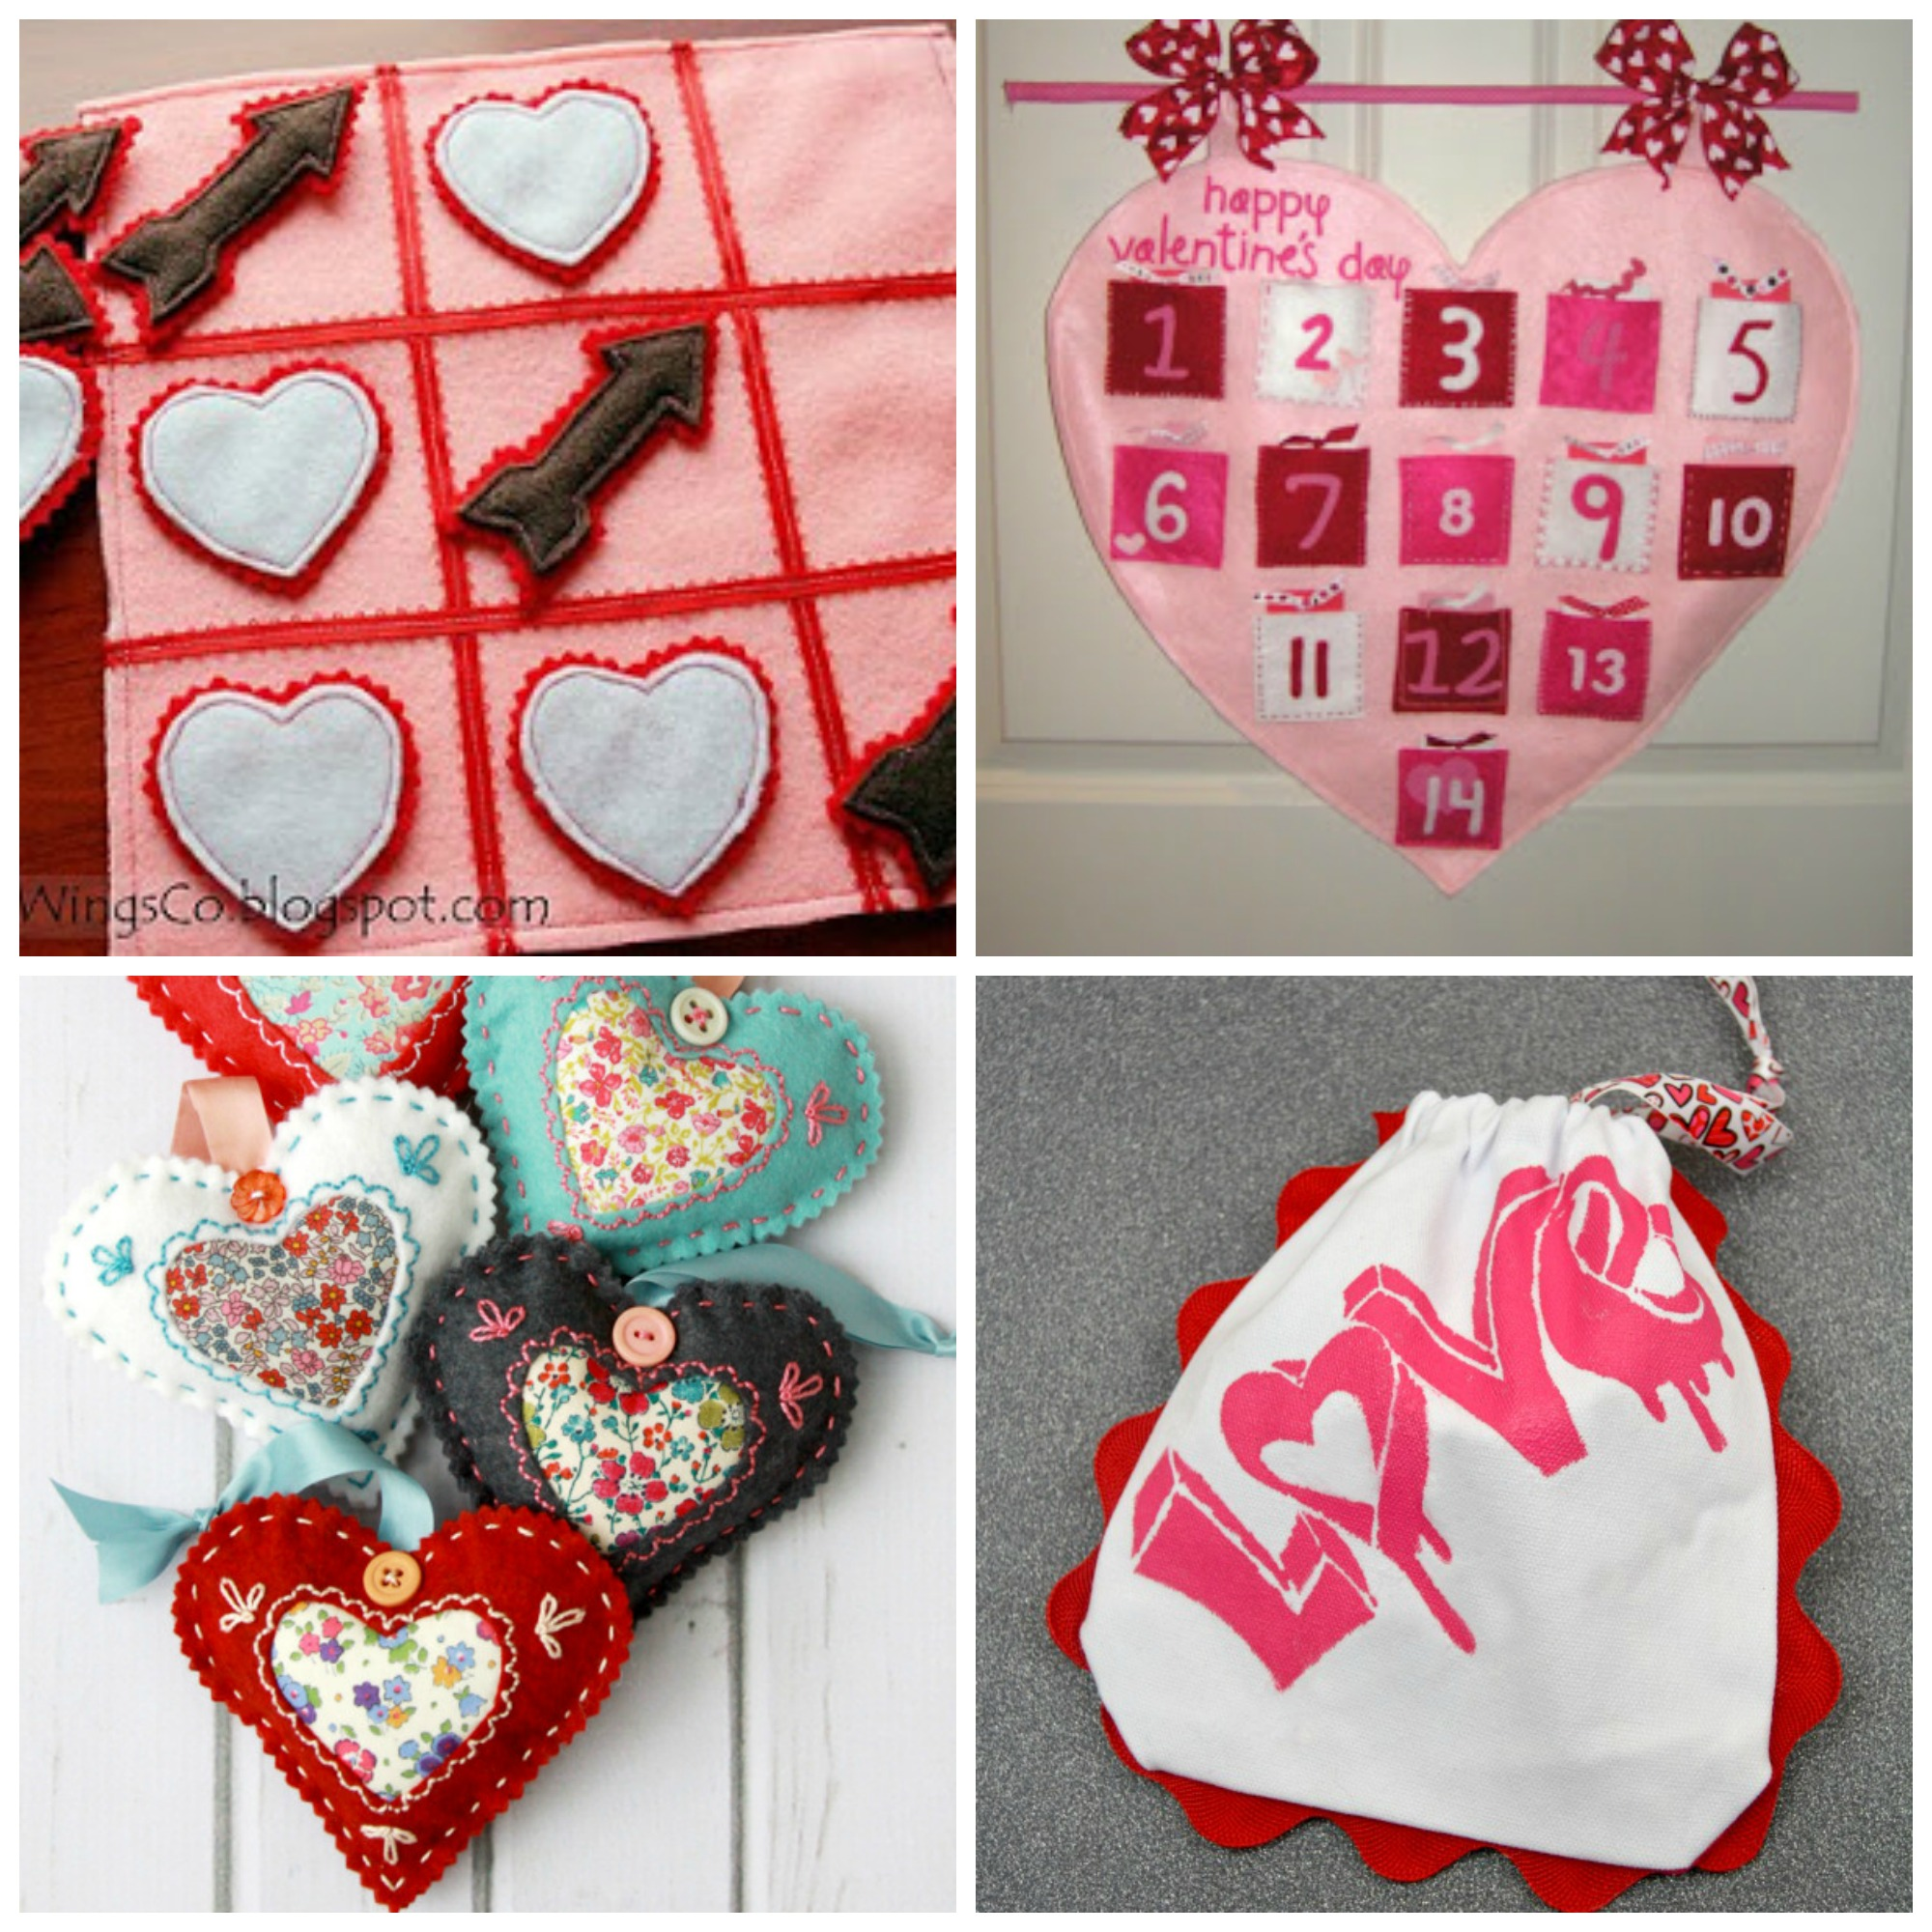 valentines gifts you can make qeetoo